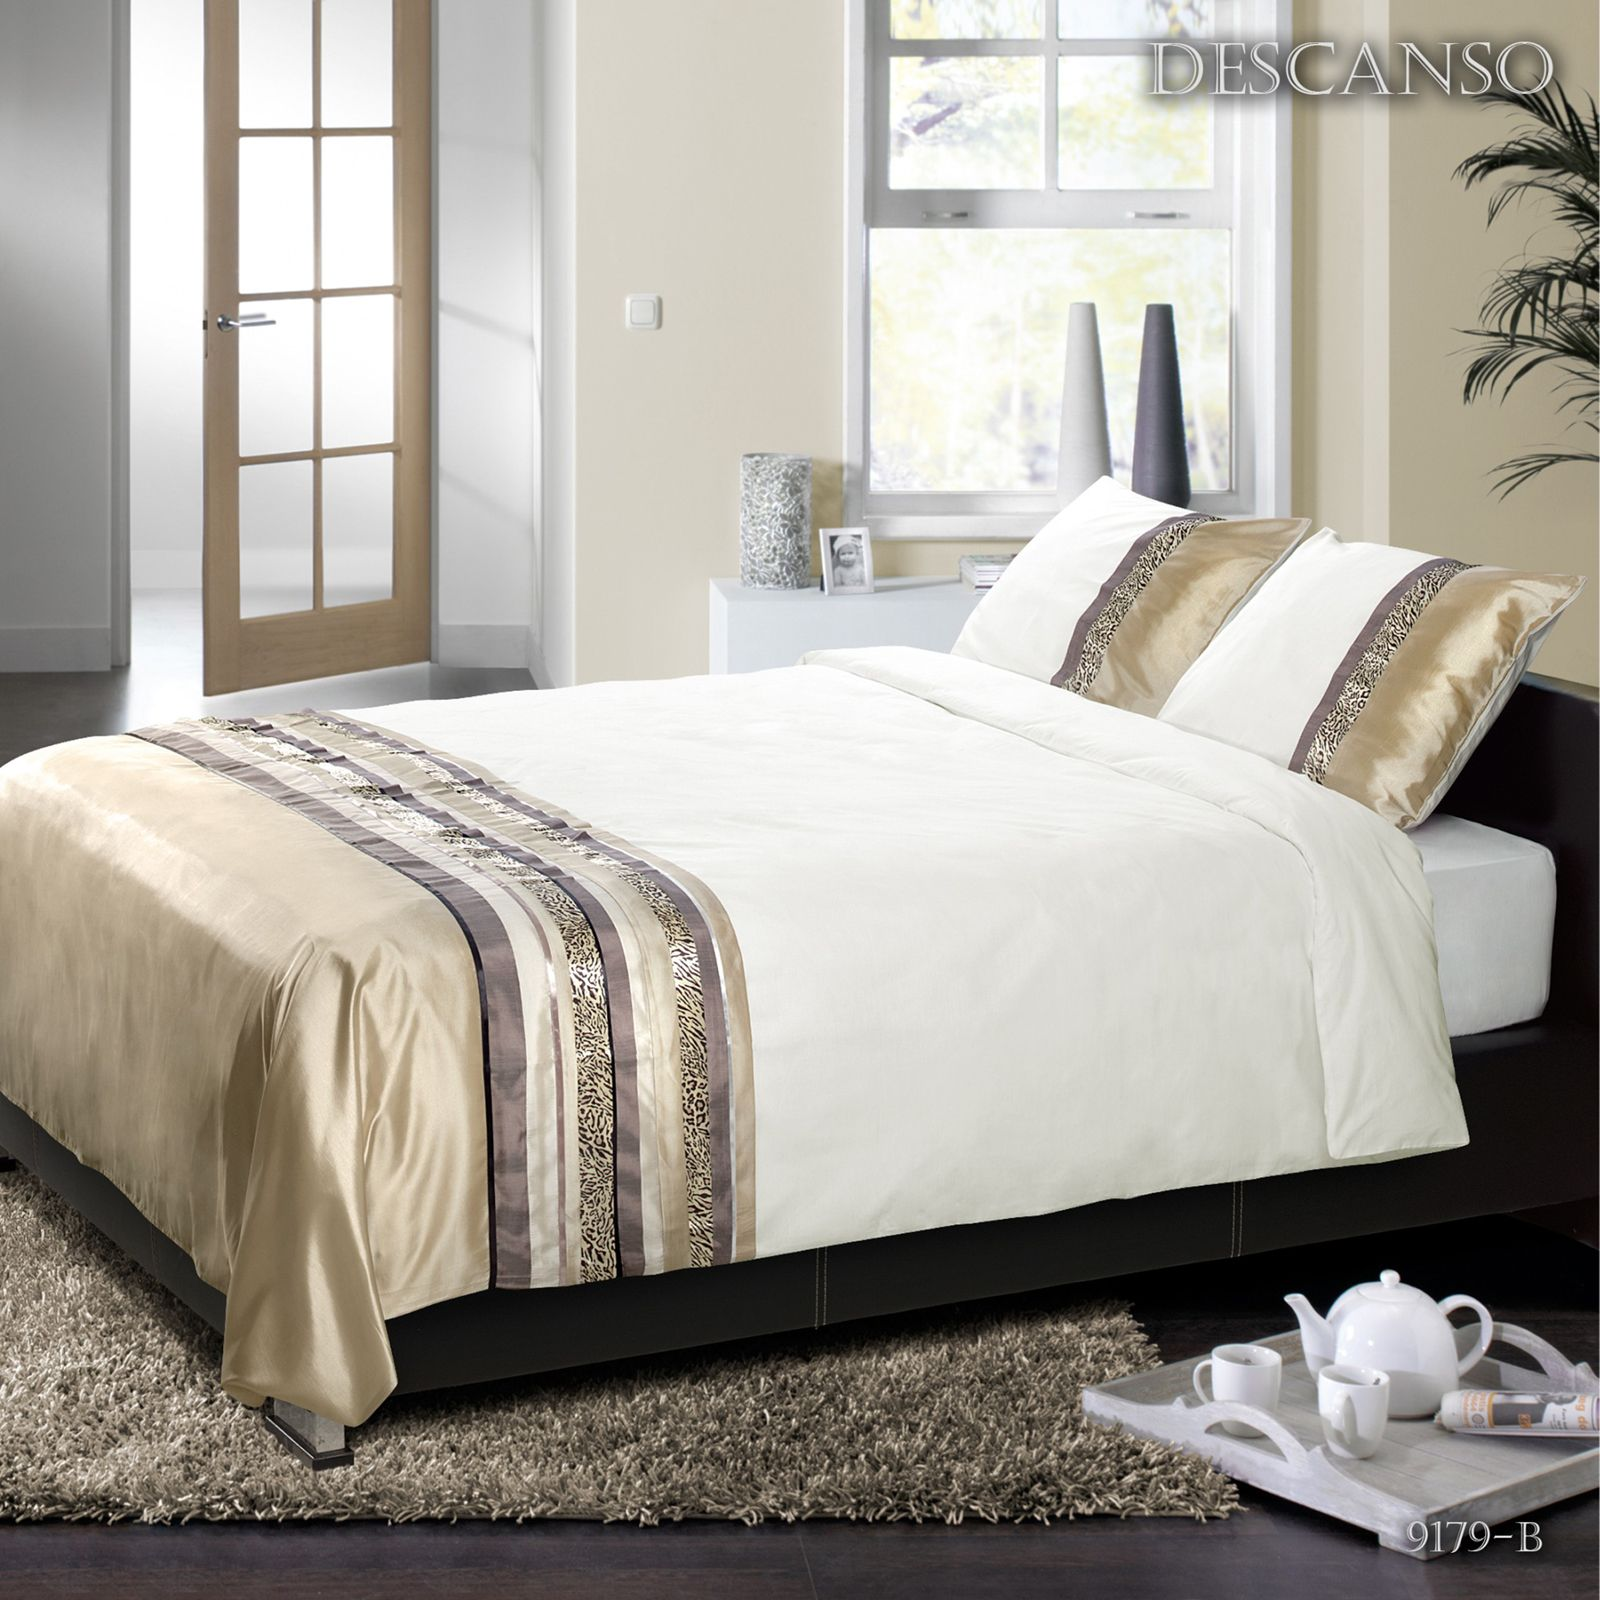 r ves et songes parure de lit beige brandalley. Black Bedroom Furniture Sets. Home Design Ideas